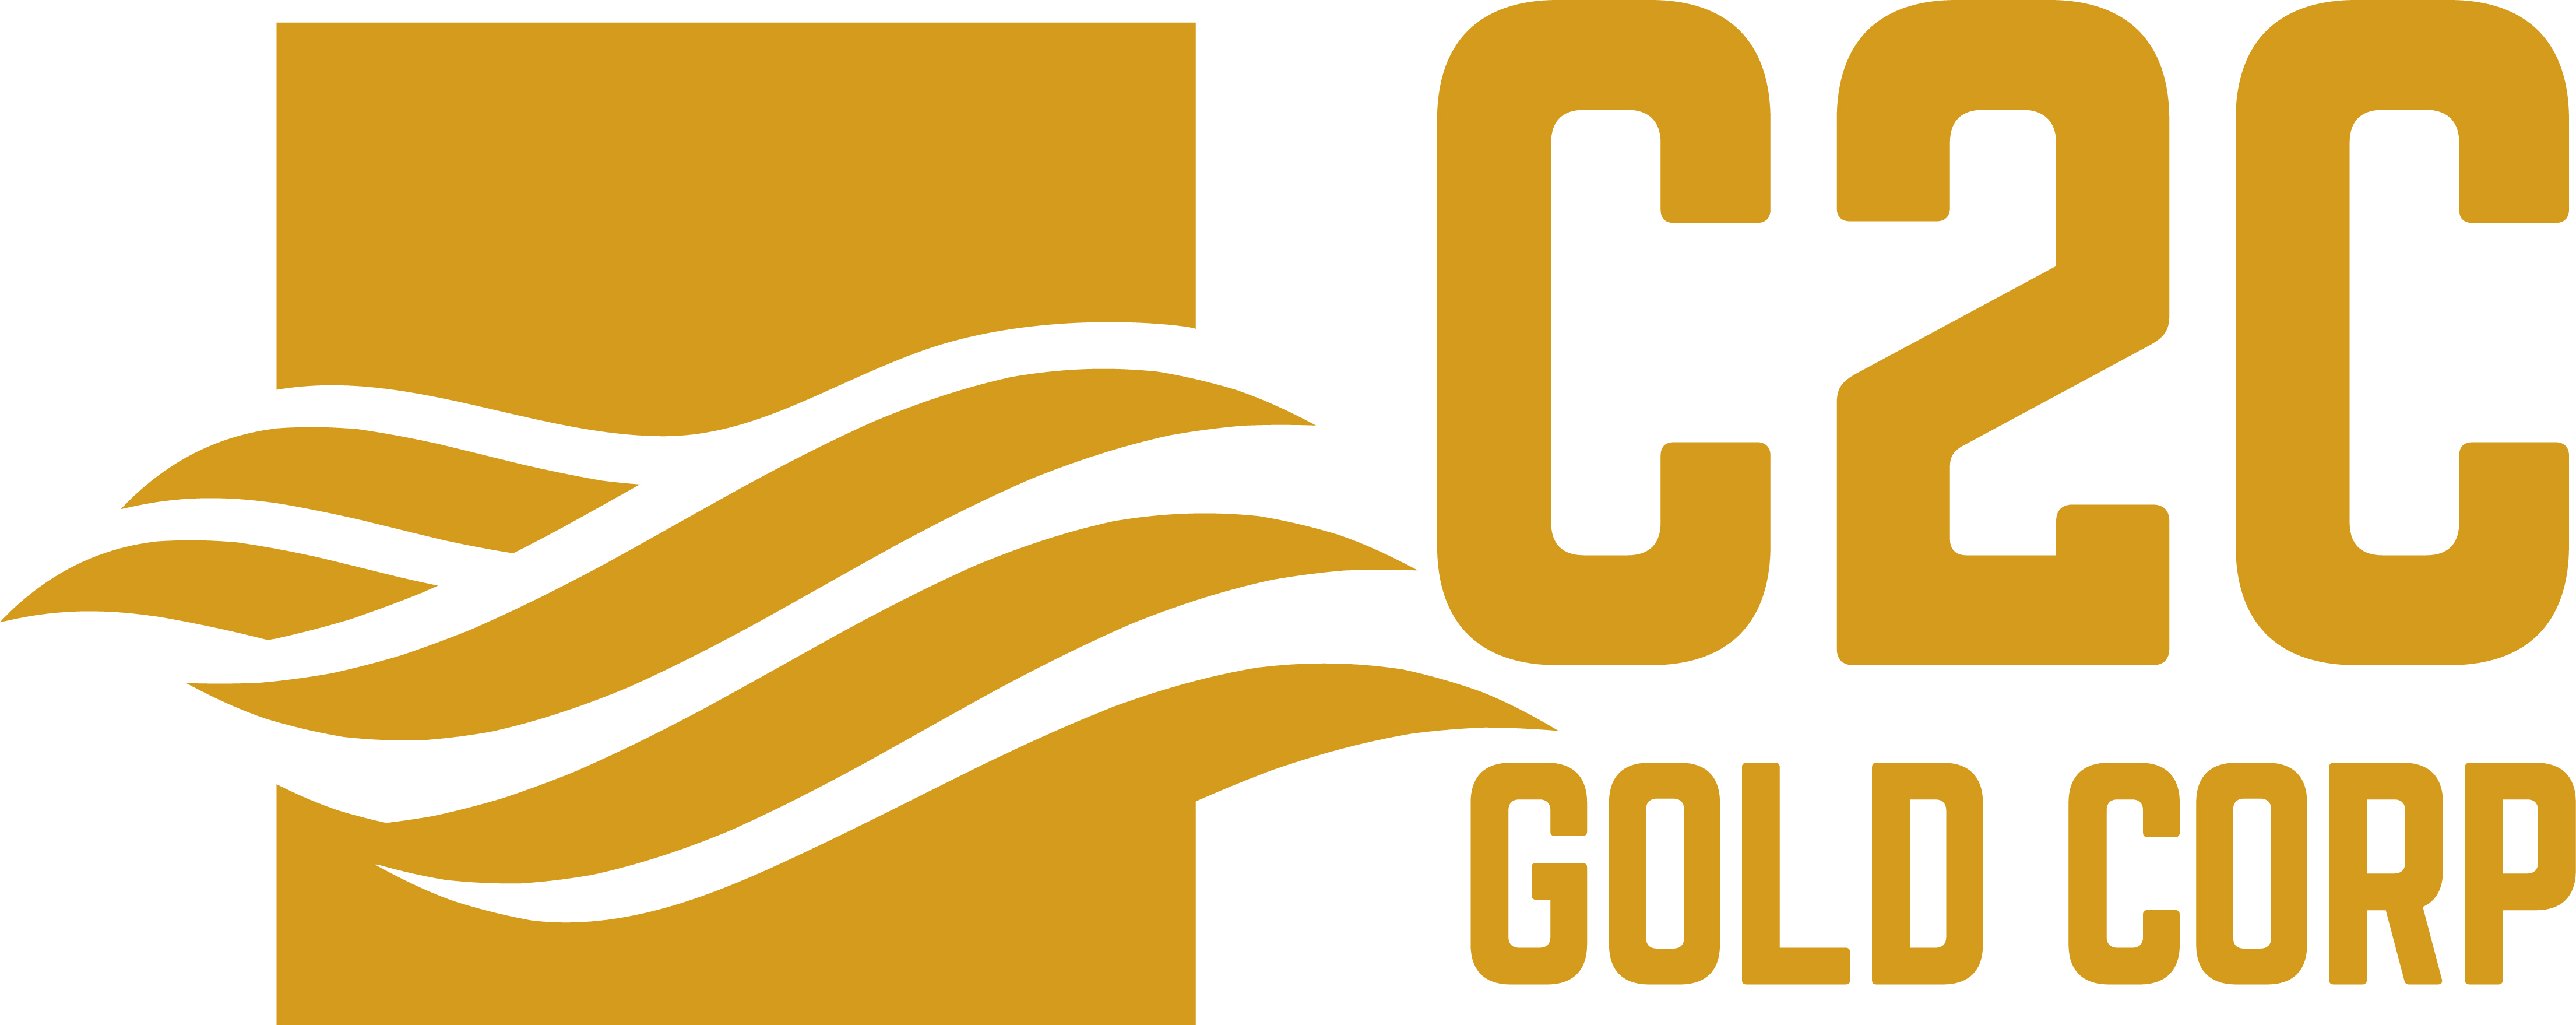 C2C Gold Expands Newfoundland Holdings; Appoints Shawn Ryan as Technical Advisor